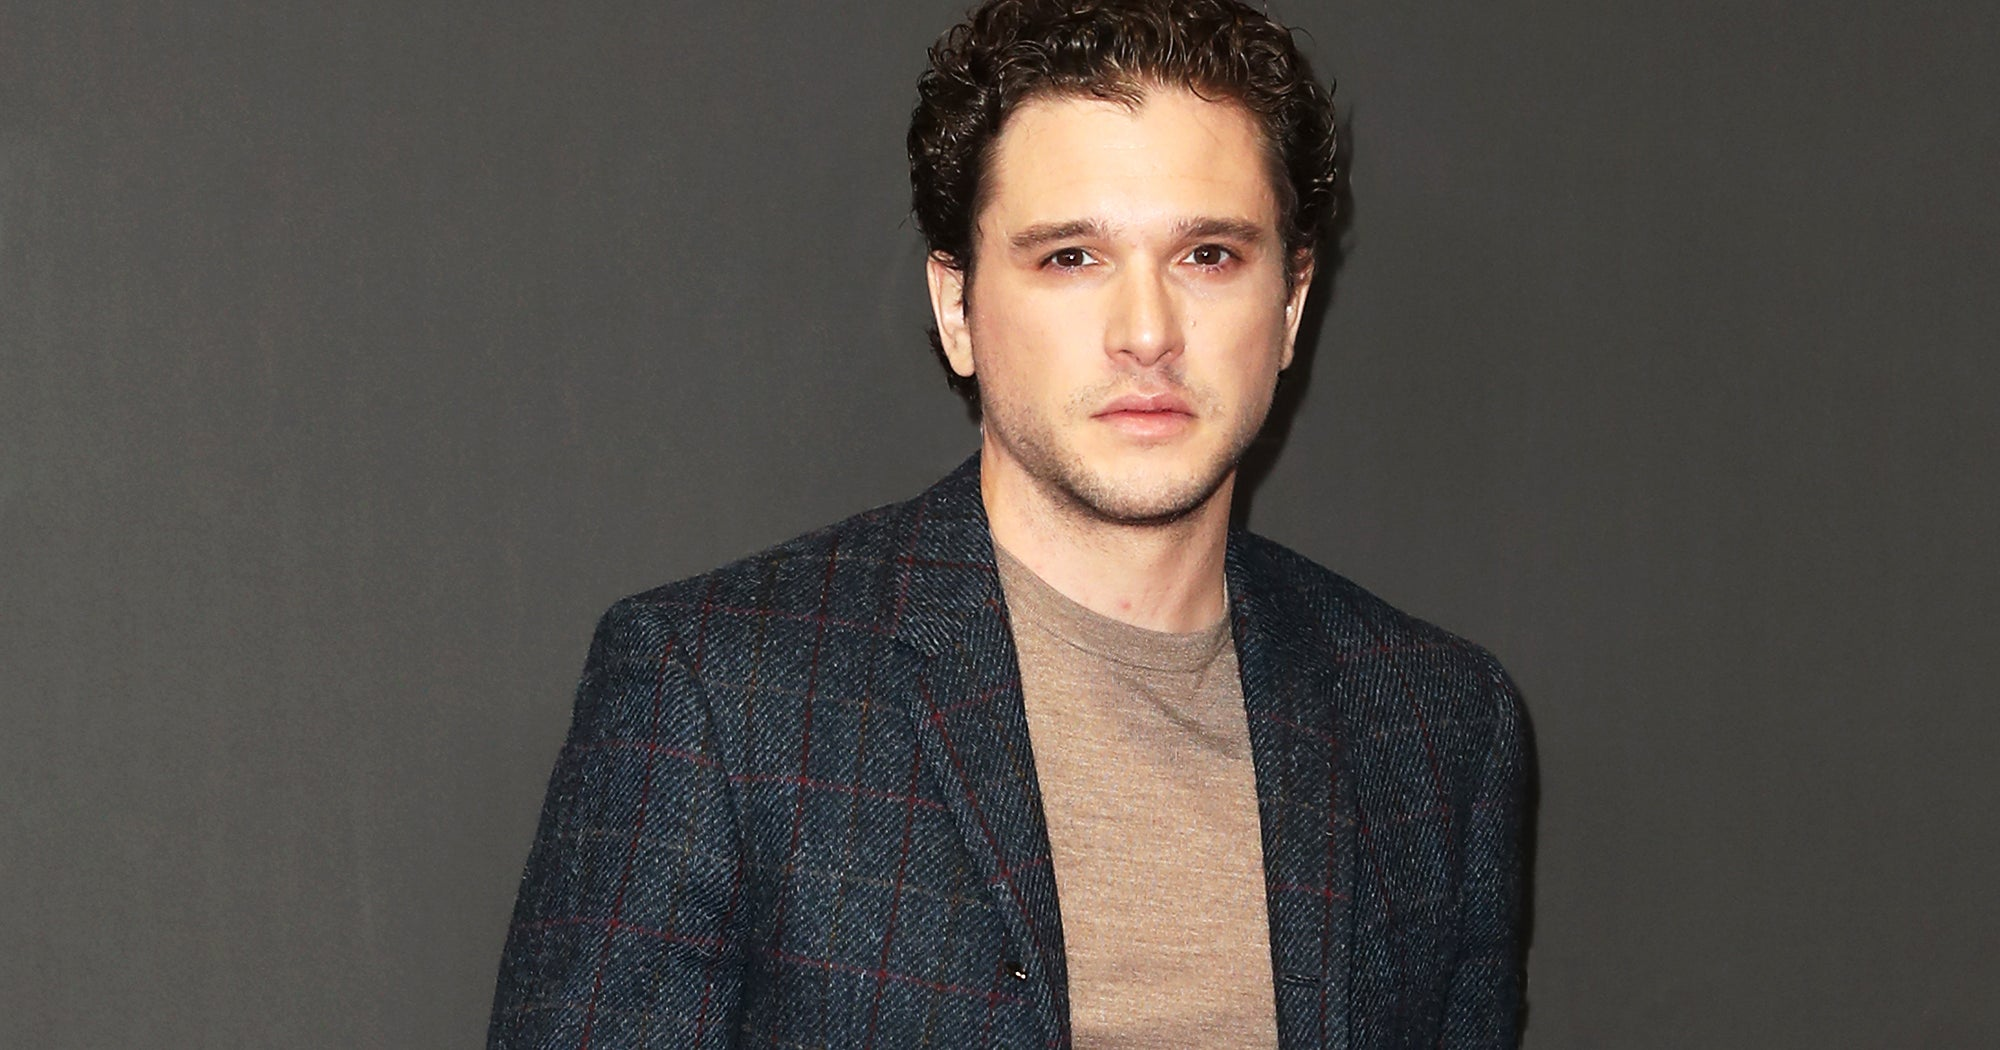 Kit Harington Makes First Appearance Since Rehab & He's All Smiles